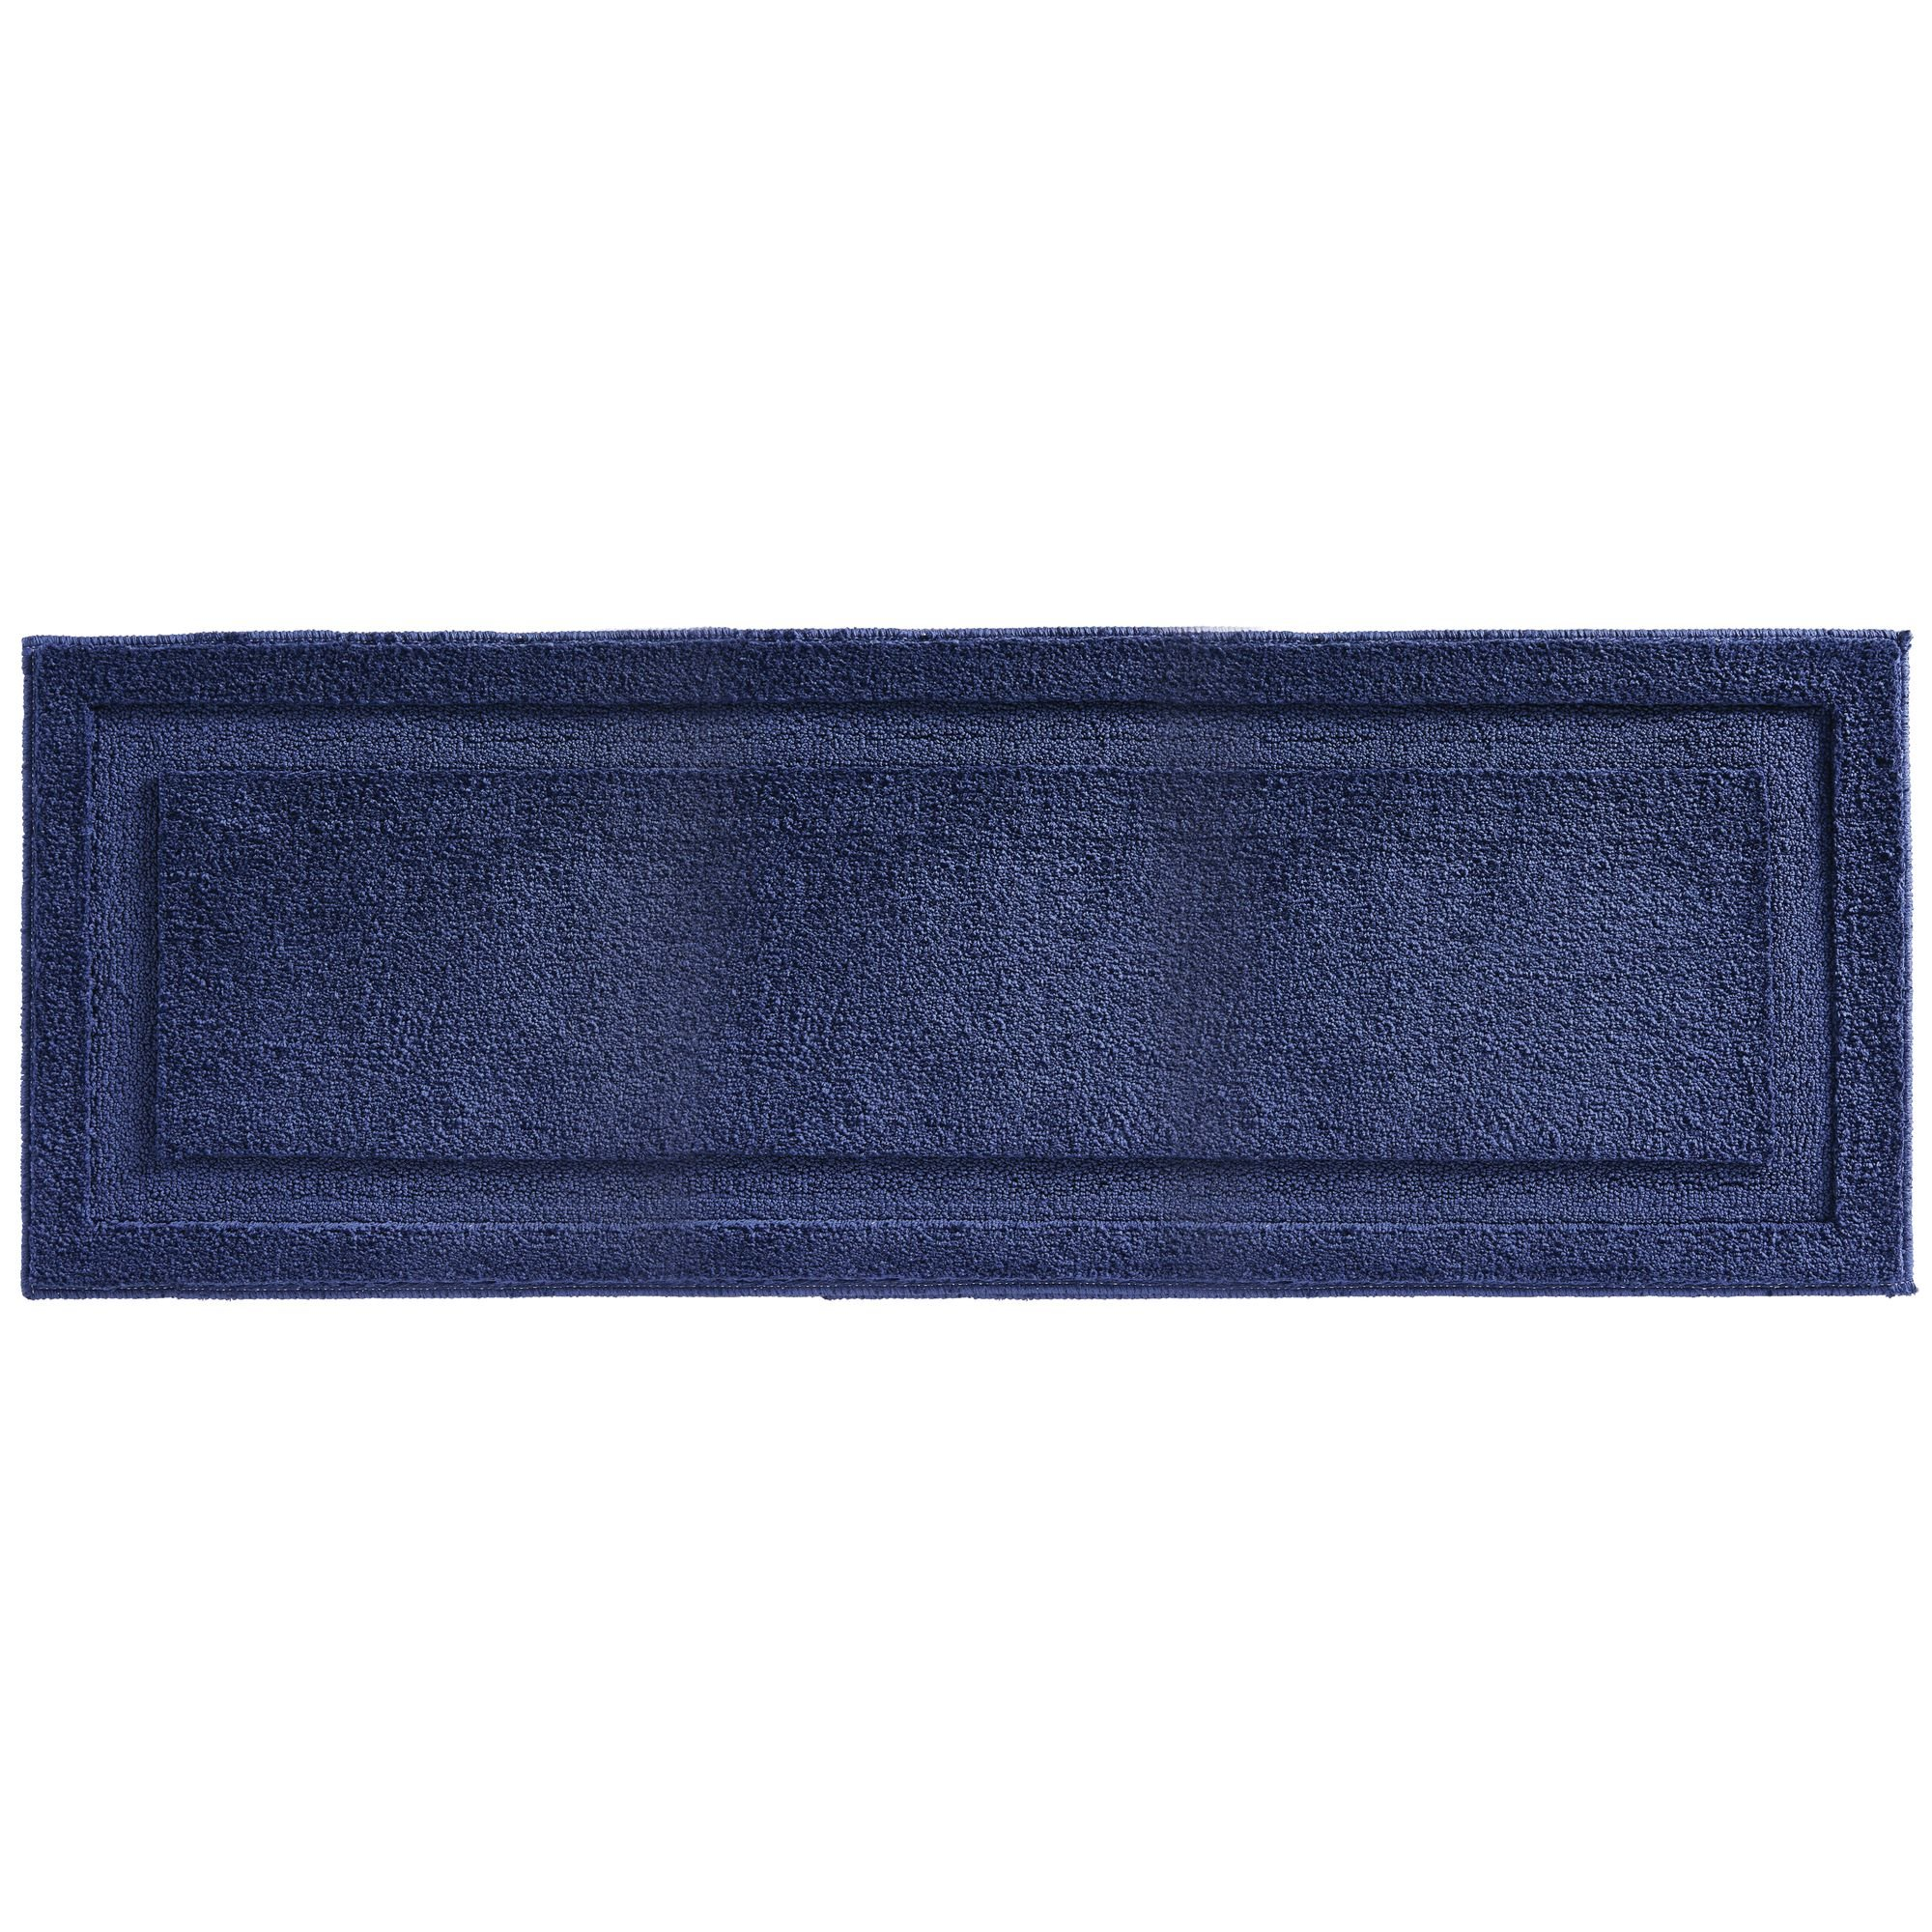 mDesign Soft Microfiber Polyester Non-Slip Extra-Long Spa Mat/Runner, Plush Water Absorbent Accent Rug for Bathroom Vanity, Bathtub/Shower, Machine Washable - 60'' x 21'' - Navy Blue